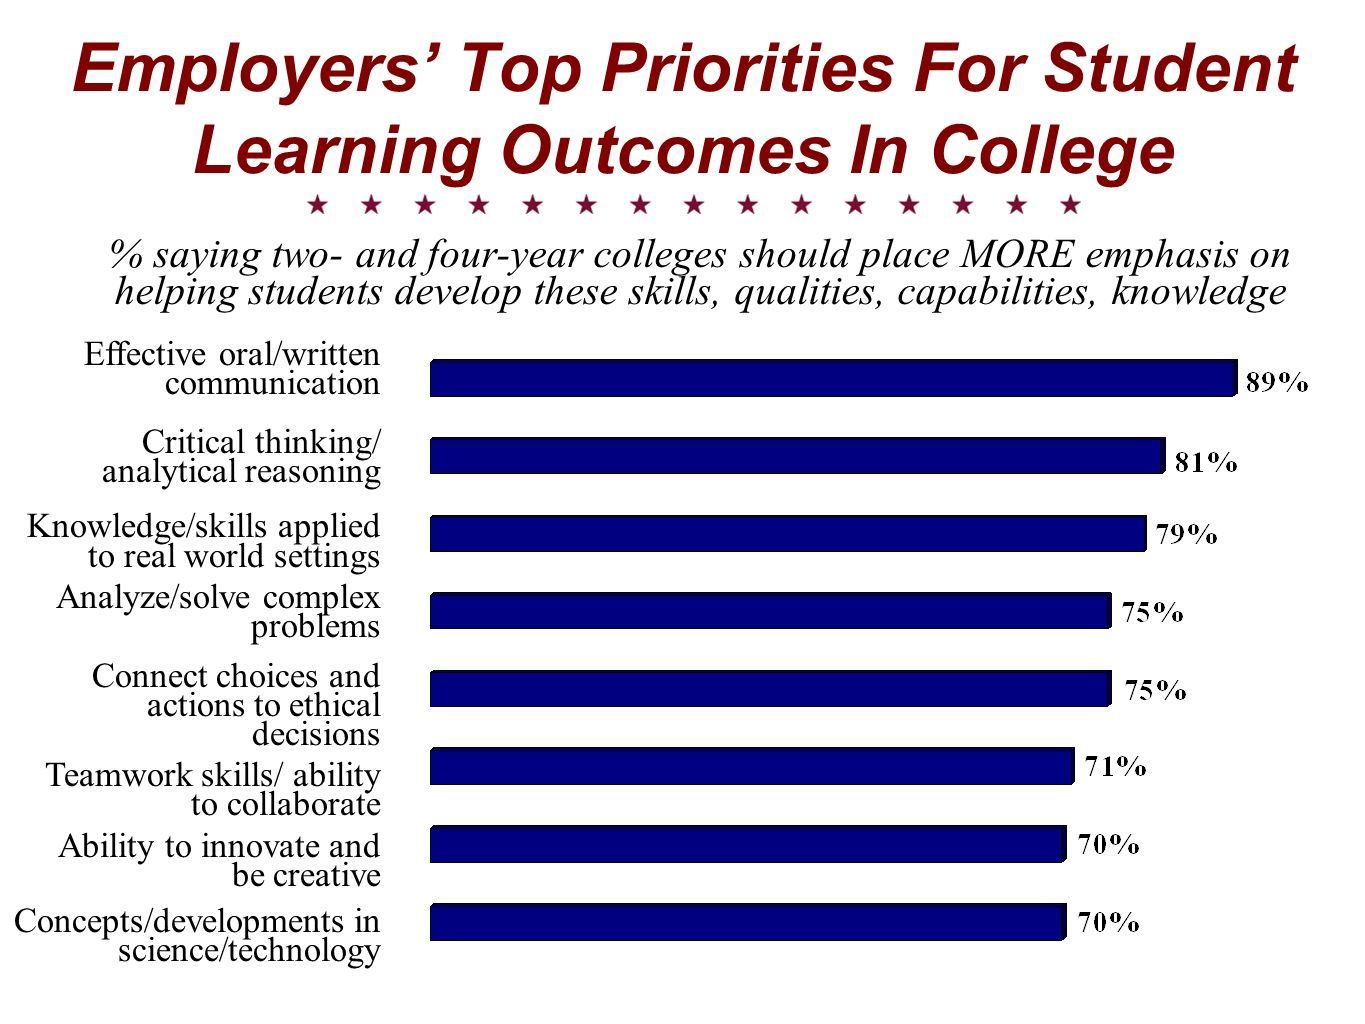 Employers' Top Priorities For Student Learning Outcomes In College